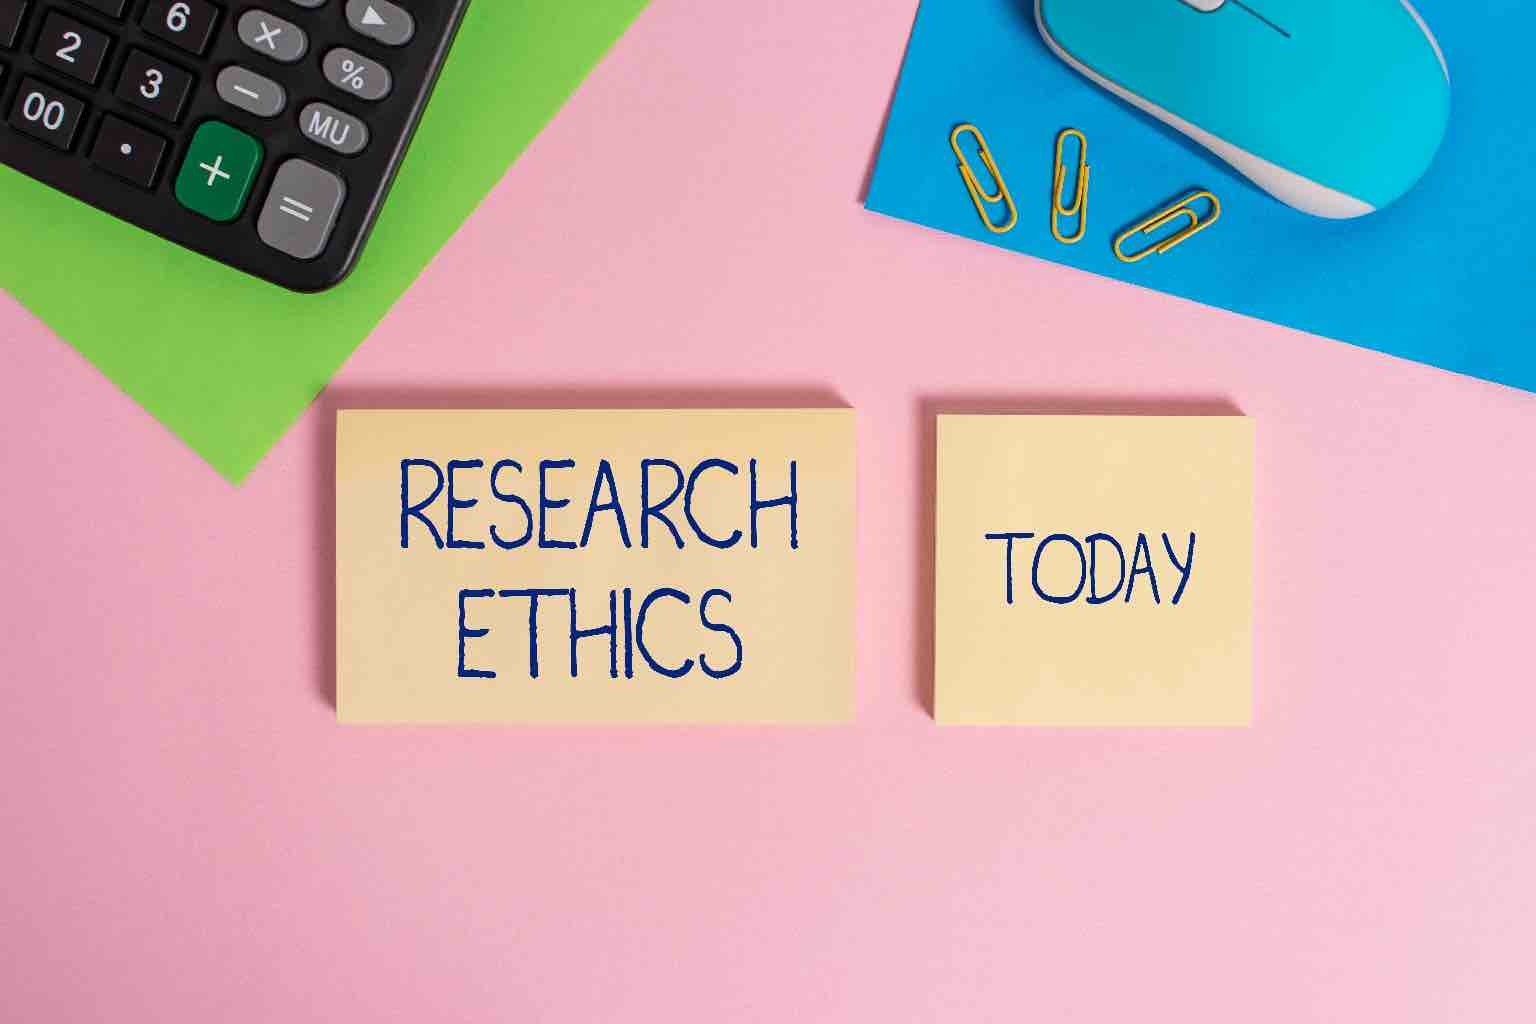 """Two post-it notes on a desktop mat read """"RESEARCH ETHICS"""" and """"TODAY"""""""